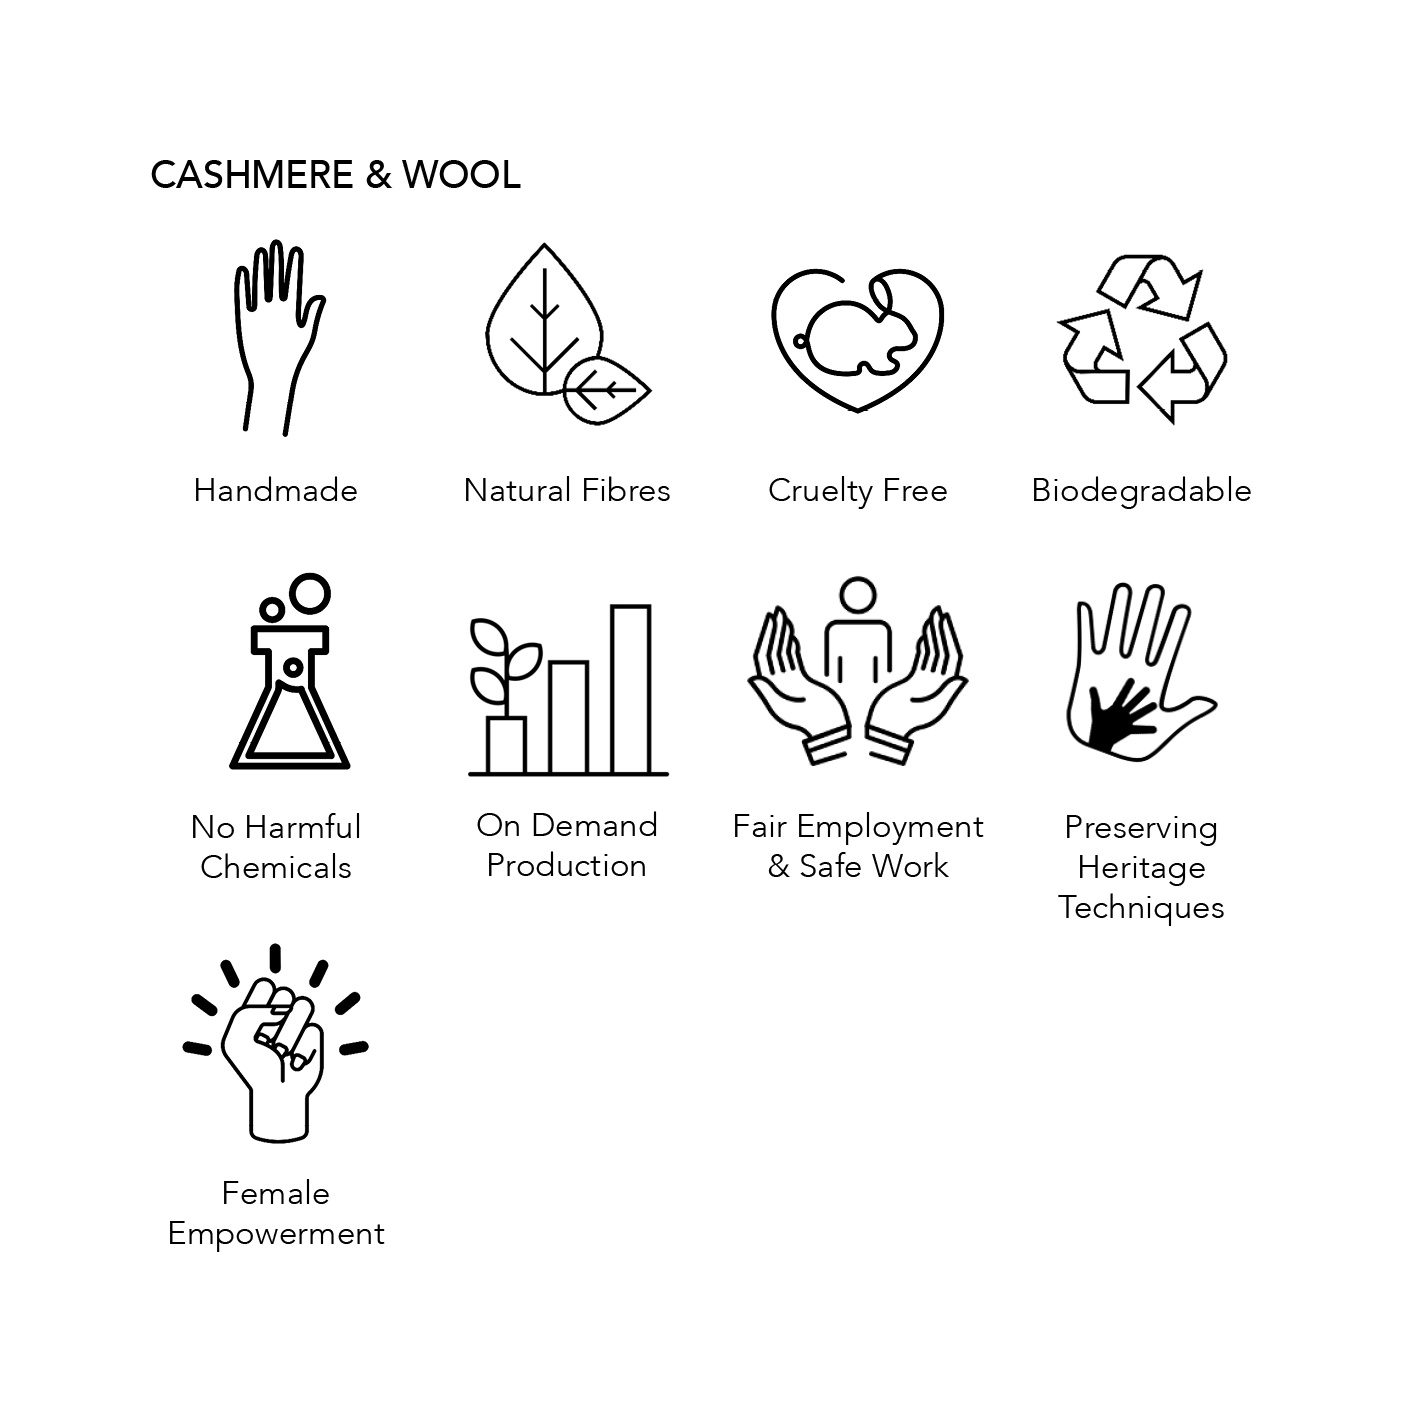 Thread Tales Cashmere & Wool Blend Sustainability Credentials; handmade, natural fibres, cruelty free, biodegradable, no harmful chemicals used, on demand production, fair employment and safe work, preserving heritage techniques, female empowerment